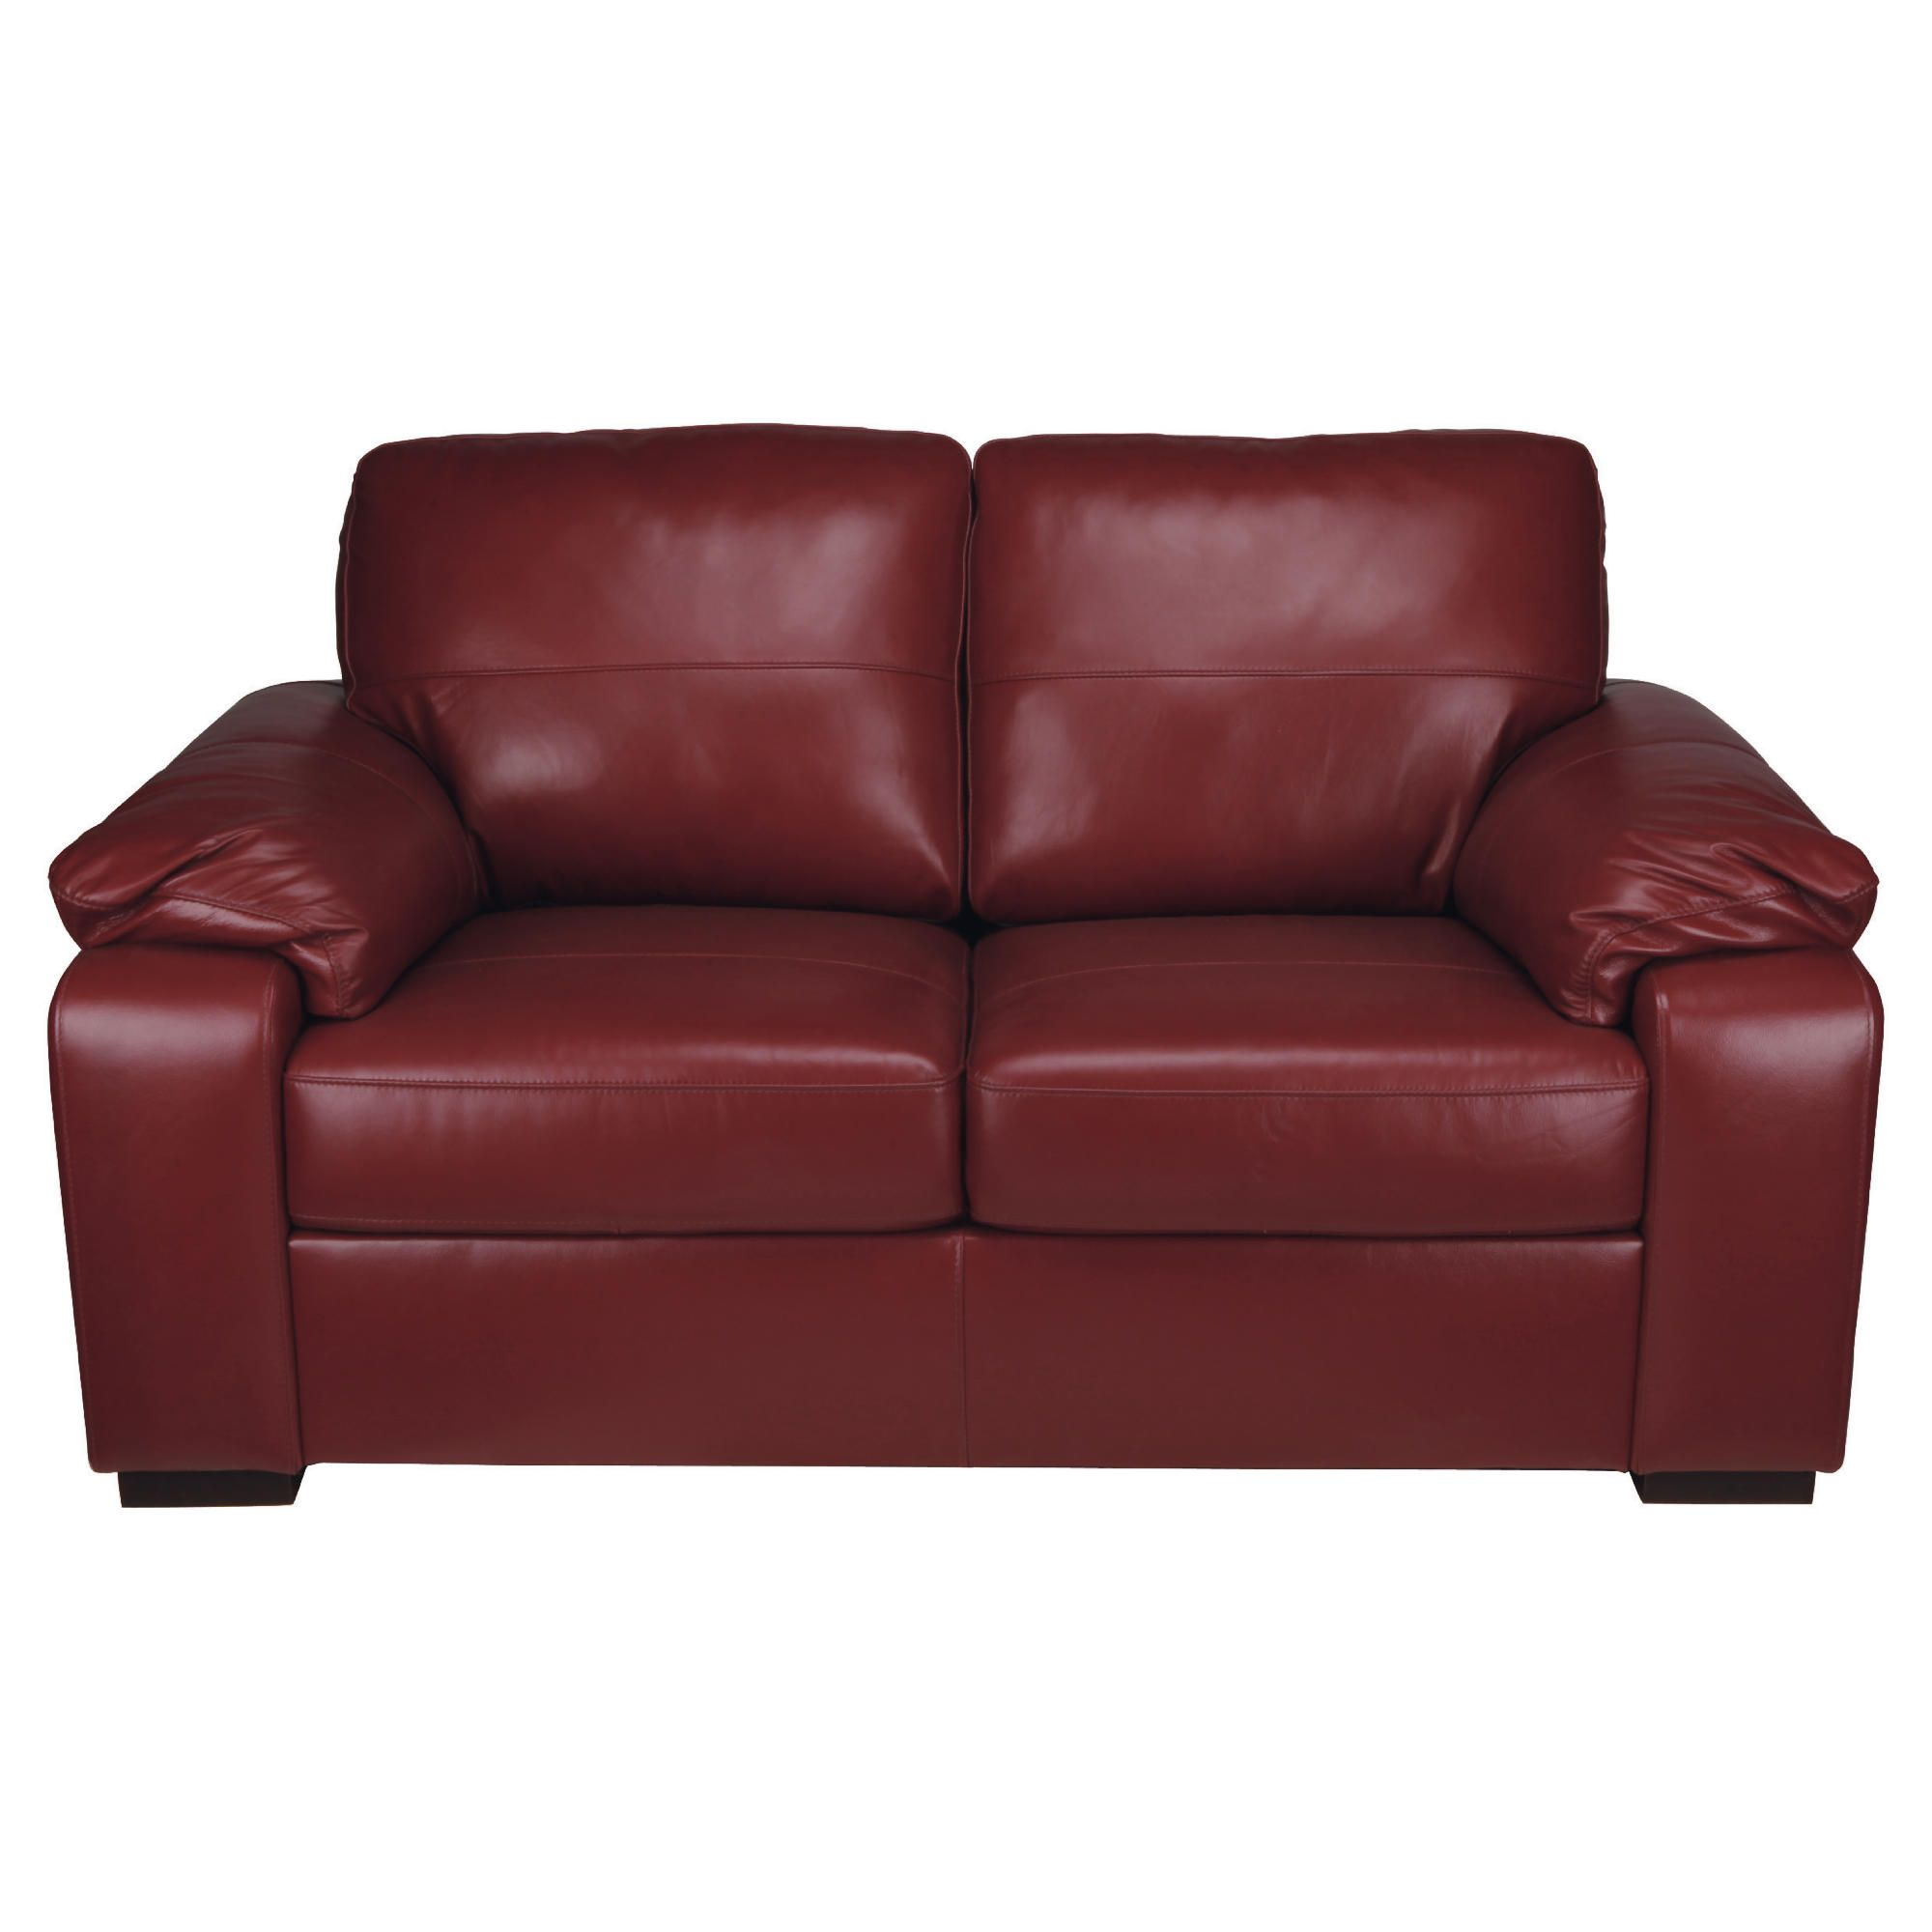 Ashmore Small Leather Sofa, Red at Tesco Direct